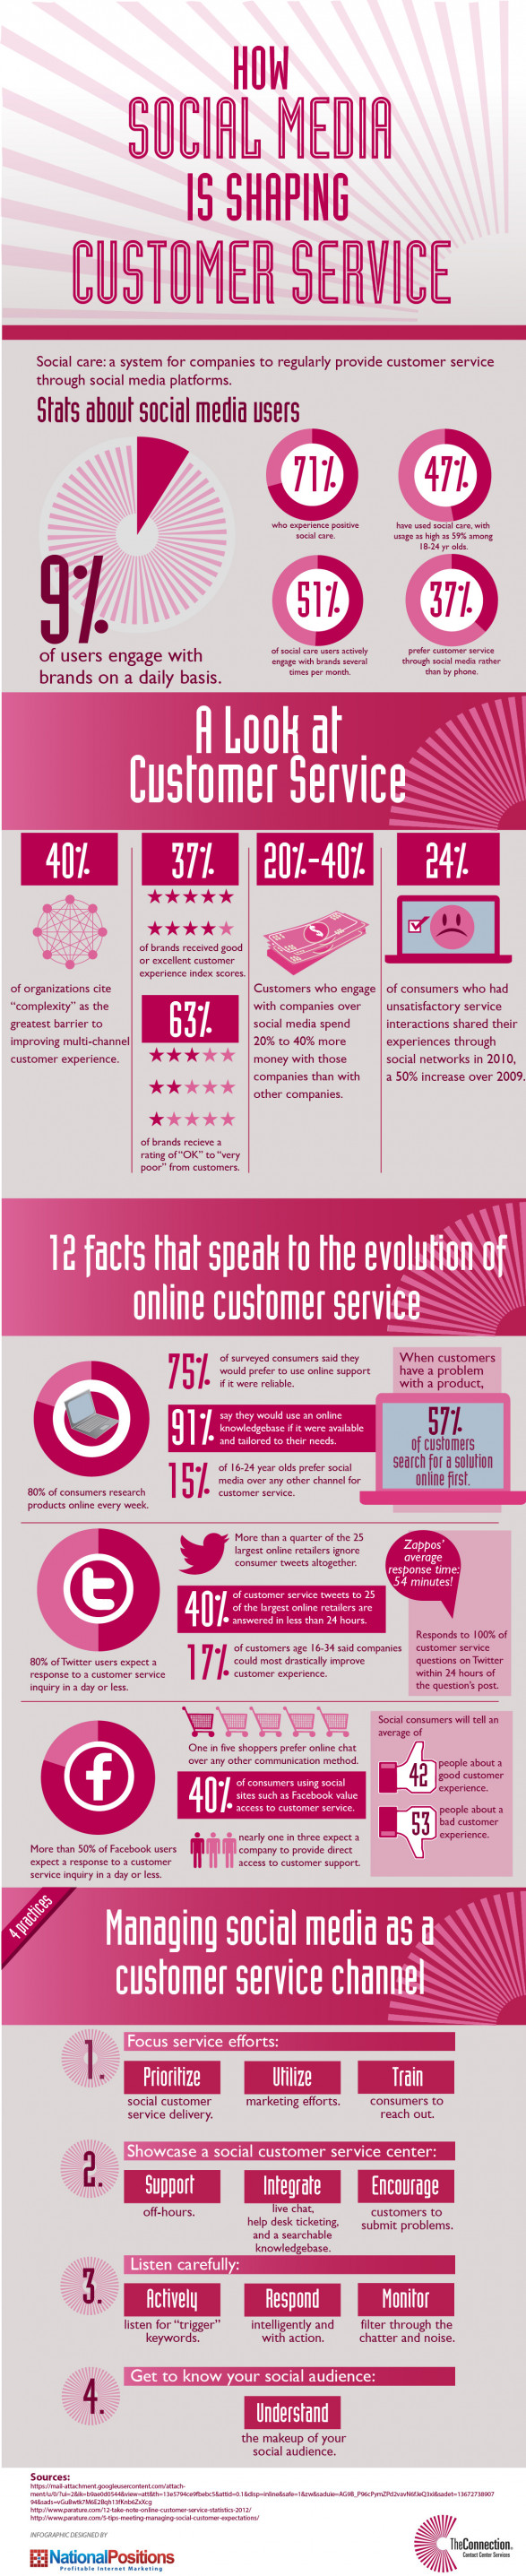 How Social Media Is Shaping Customer Service - The Connection